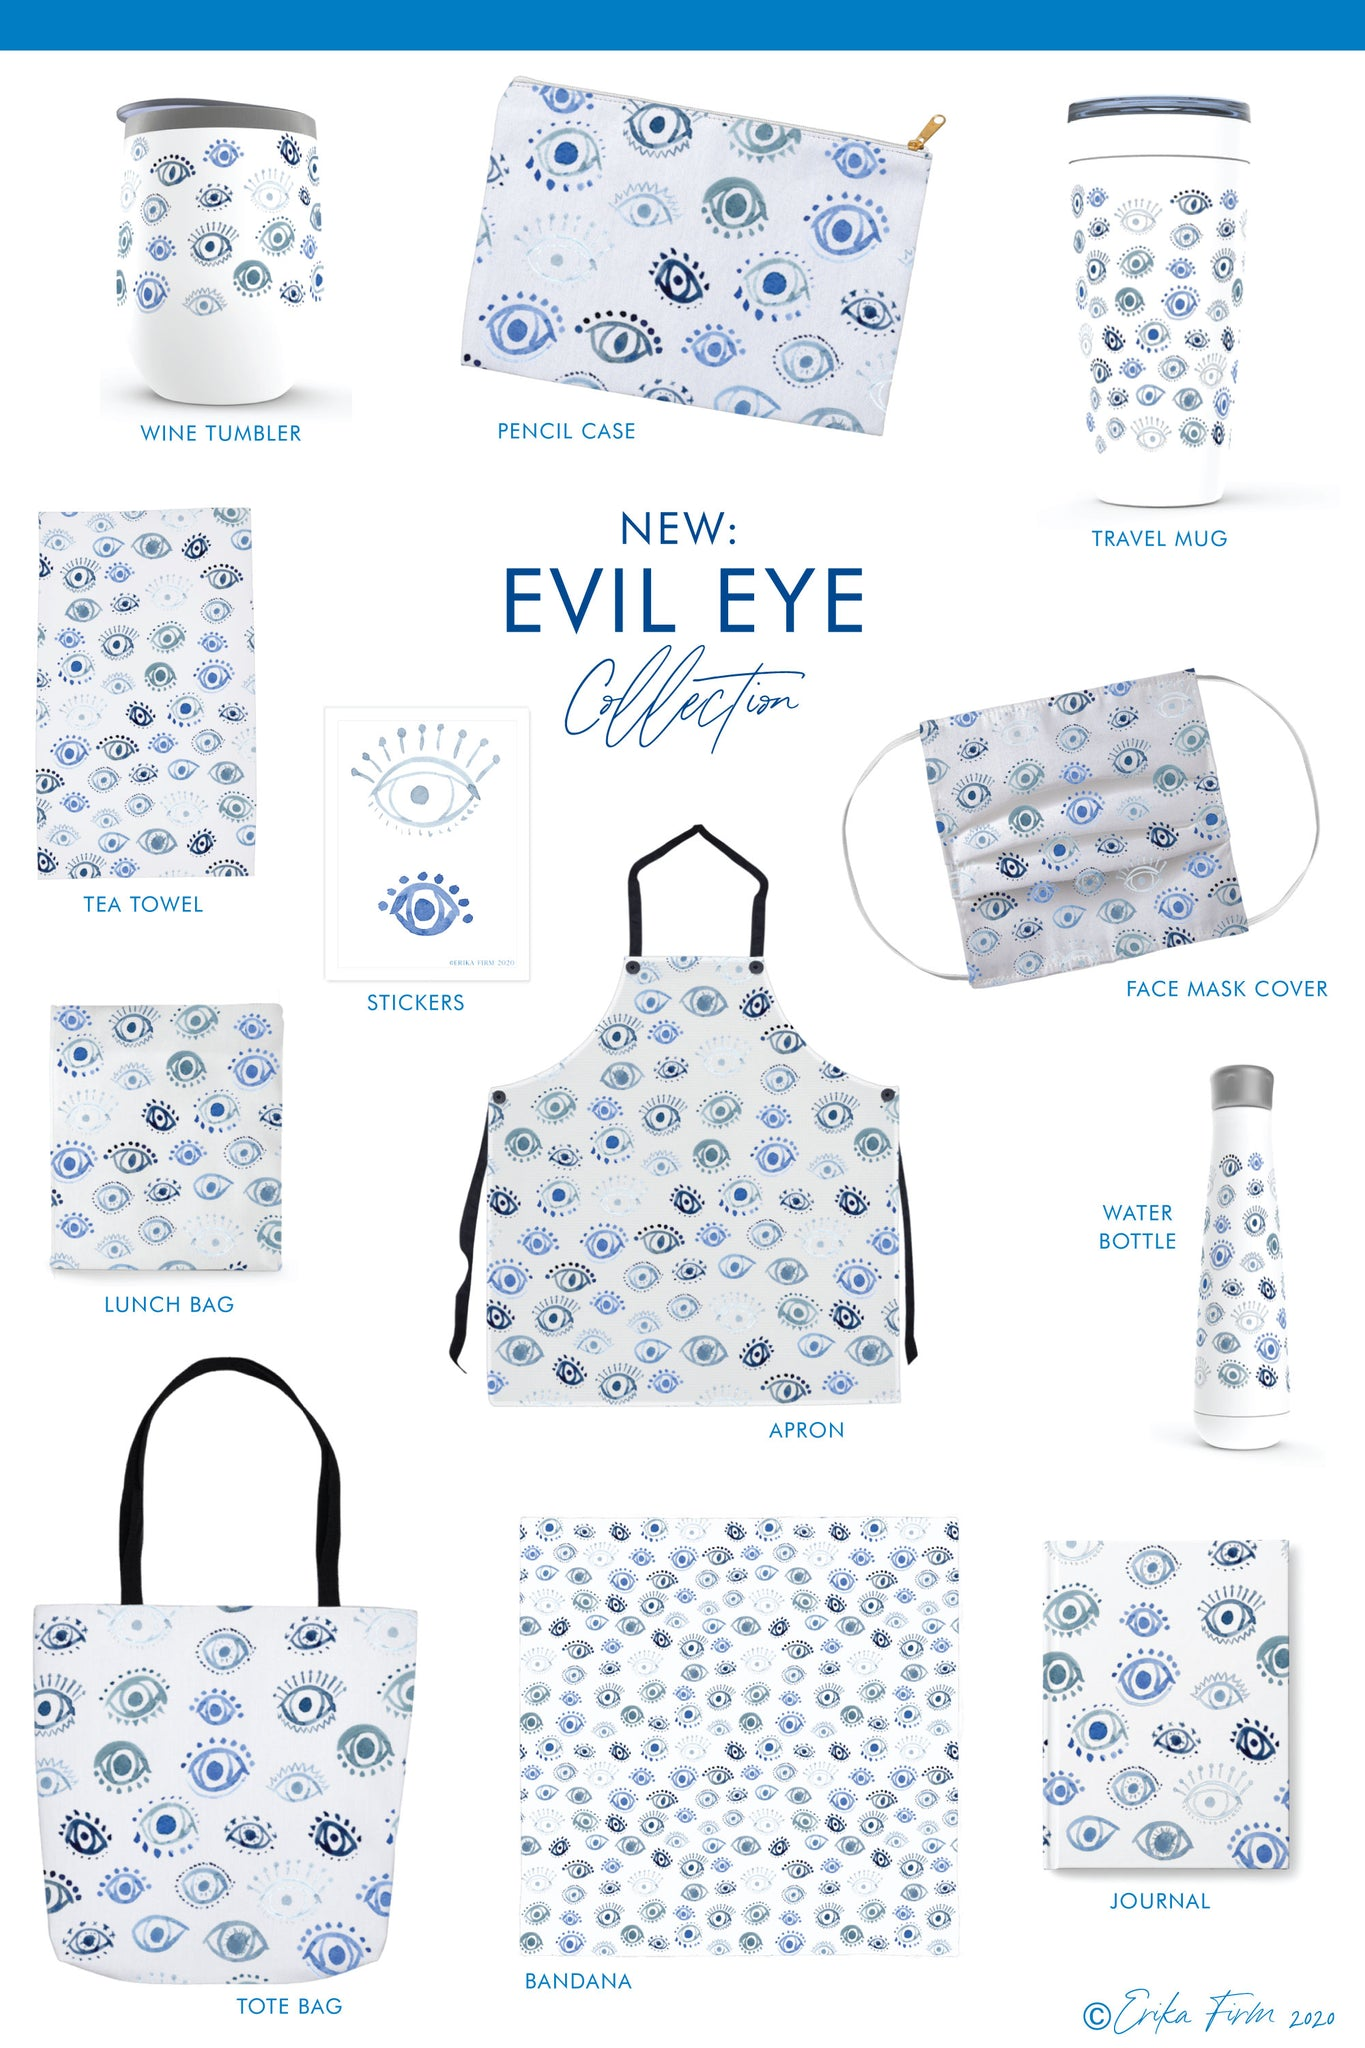 Introducing the New Evil Eye Collection by Erika Firm featuring pencil cases, drinkware, travel mugs, aprons, tea towels, tote bags, and more.